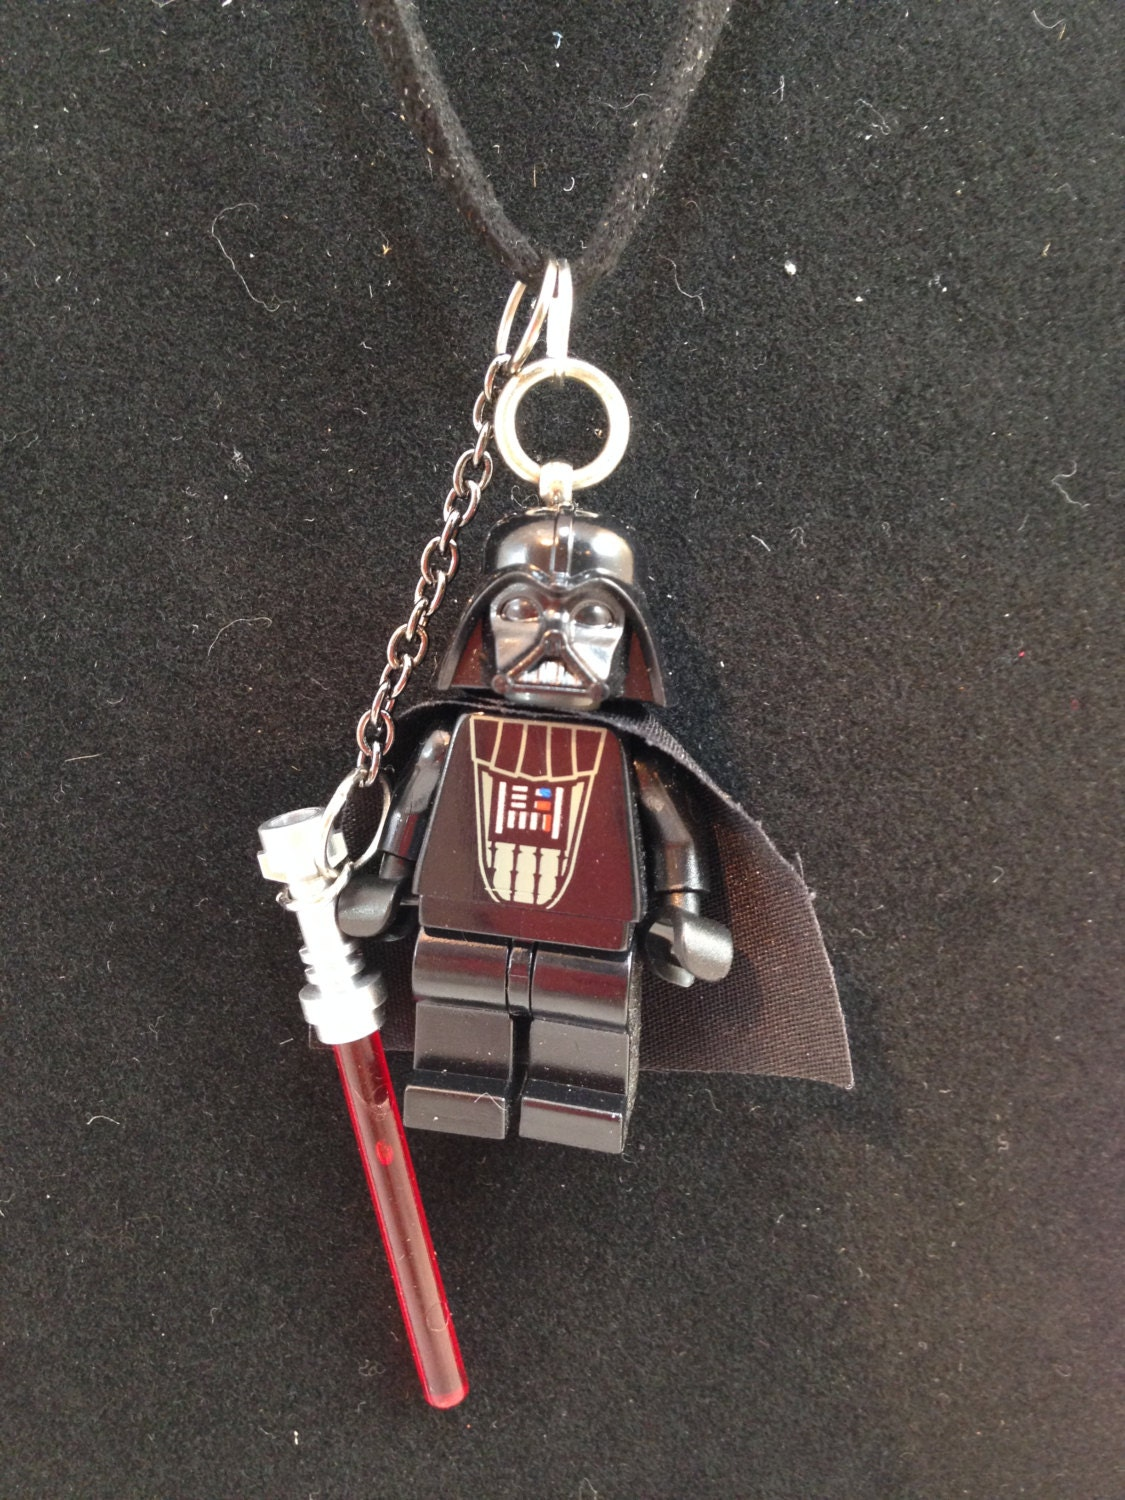 Darth Vader Star Wars Lego Minifigure Necklace